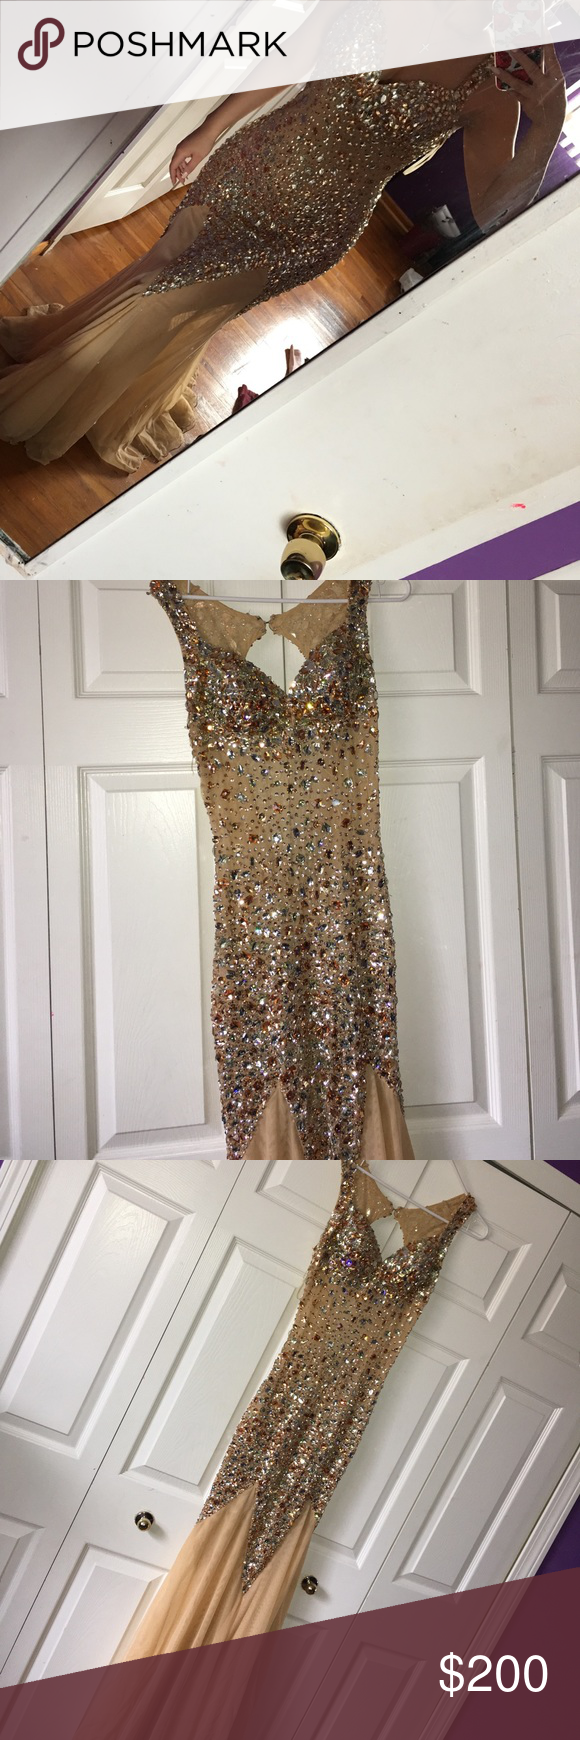 13+ Selling used prom dress info